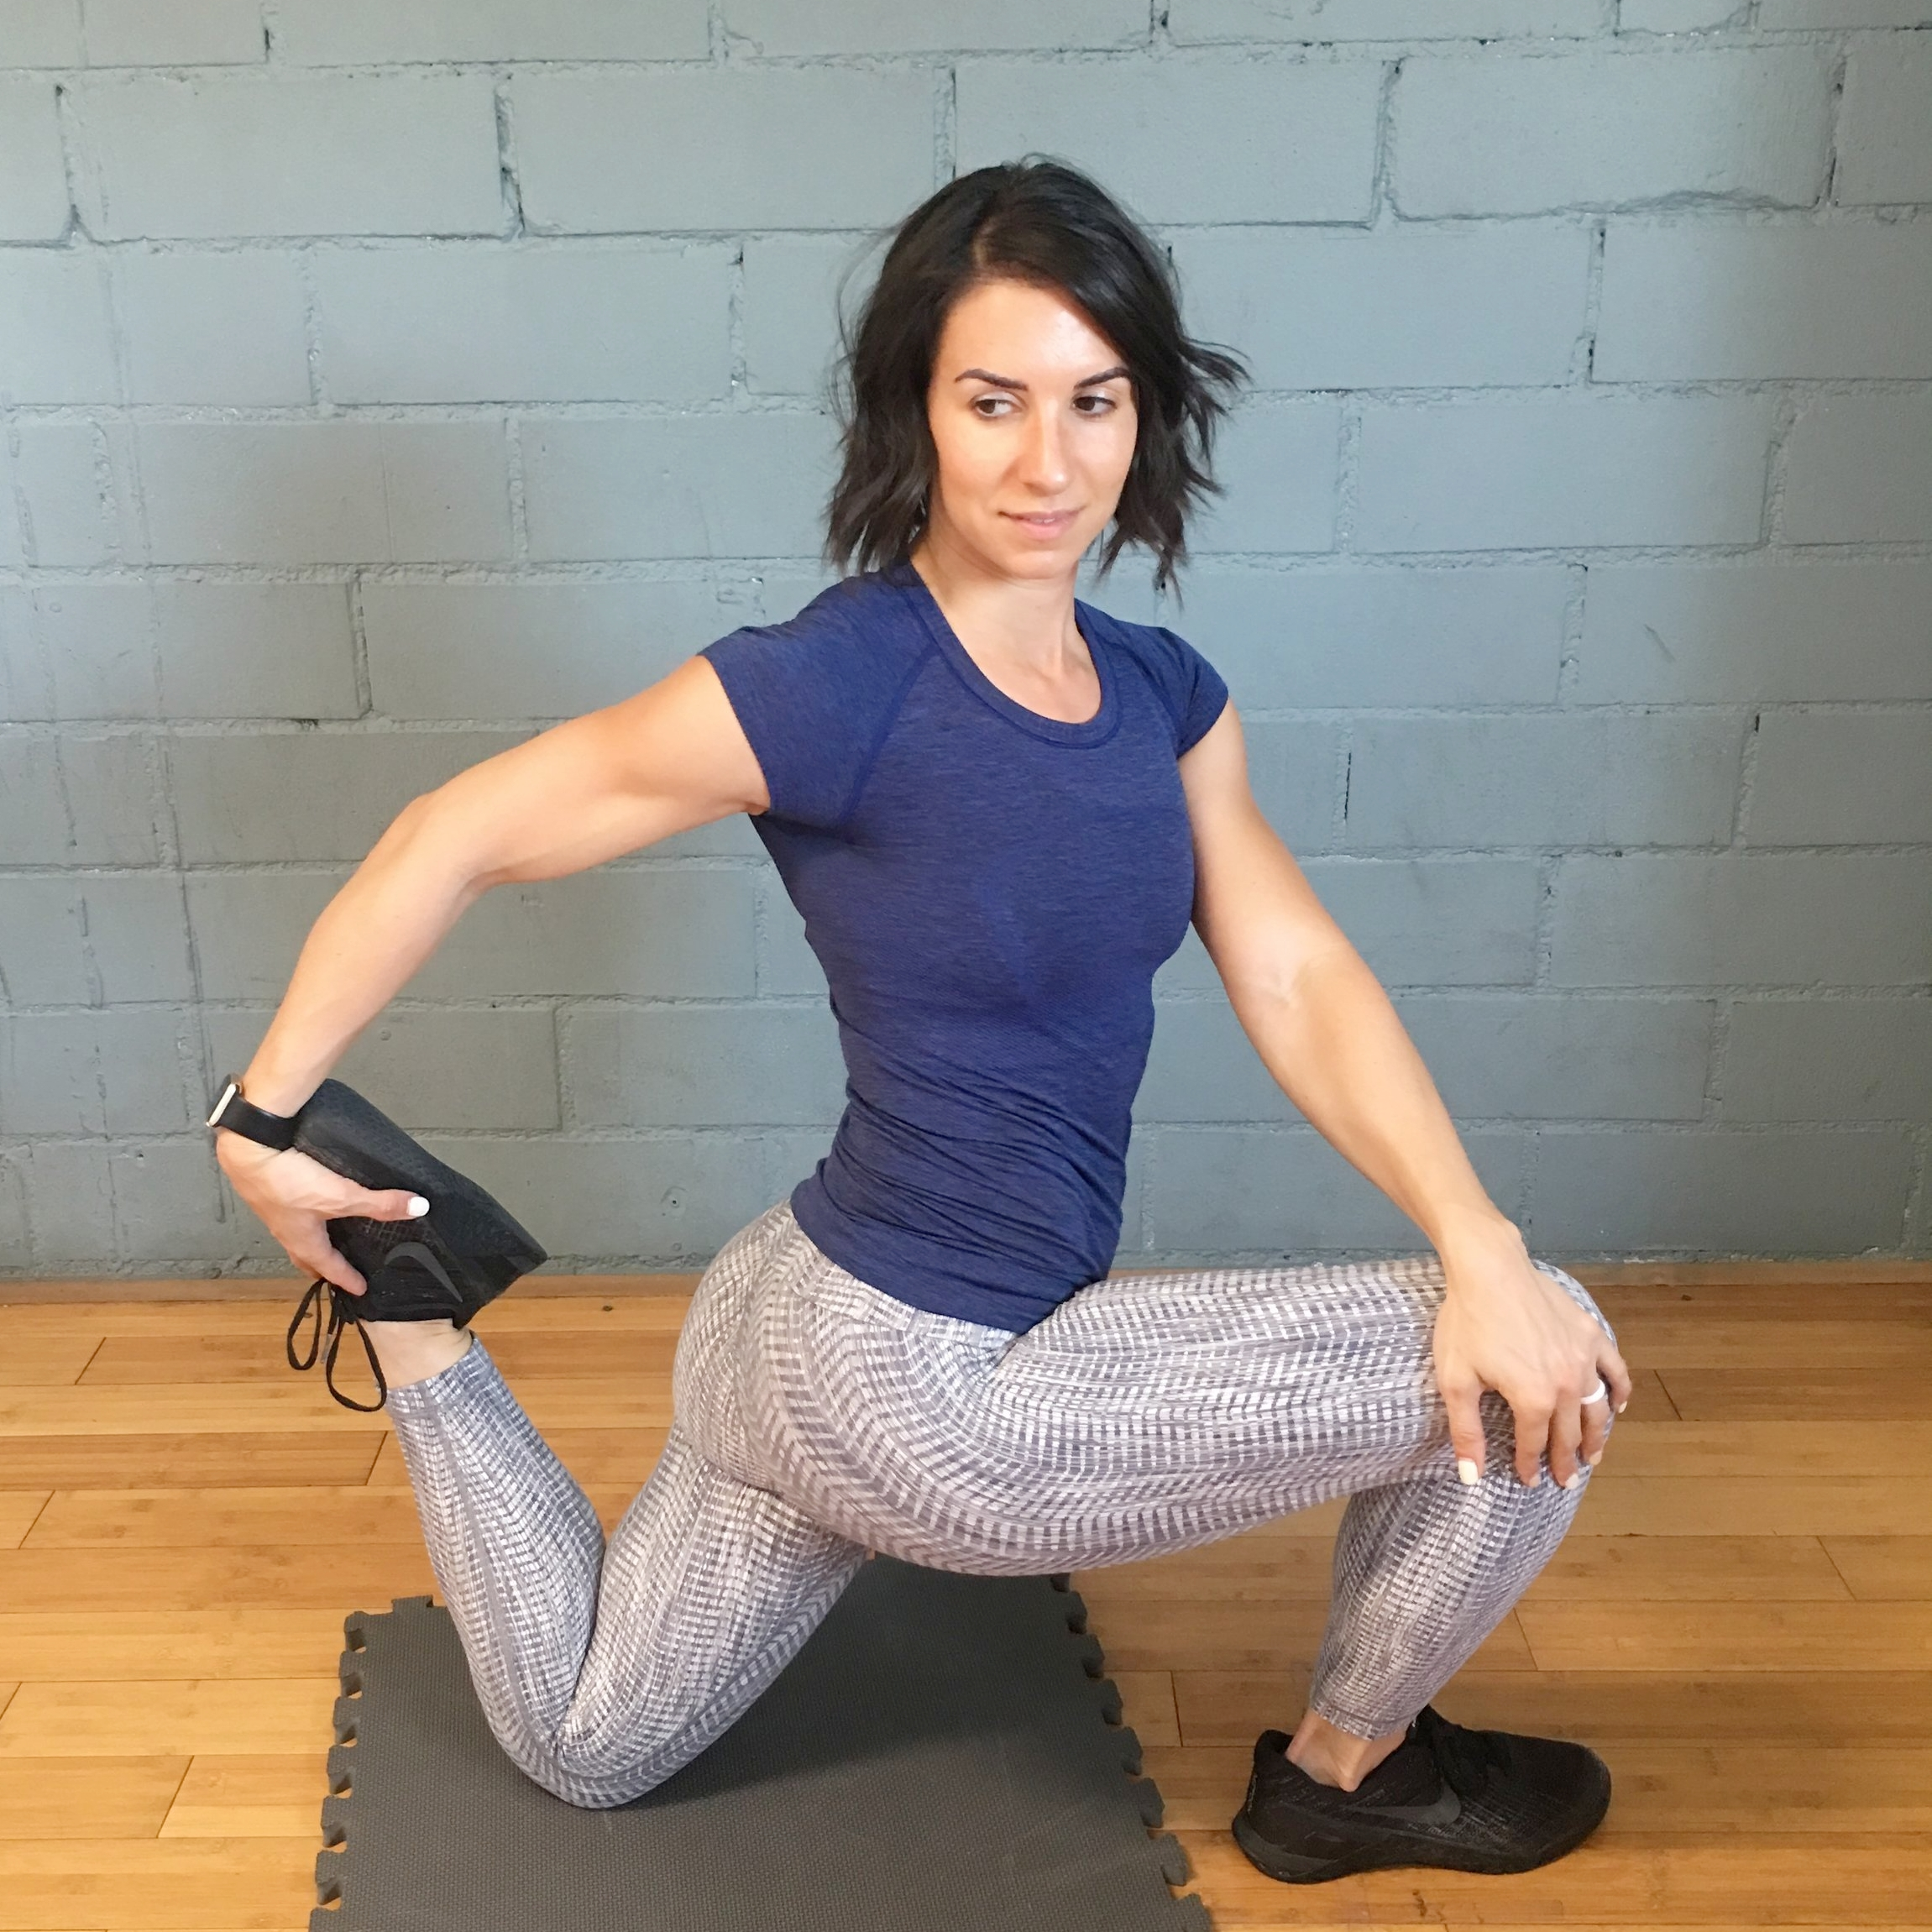 *Step into a deep lunge with your back knee on the ground. Gently twist your torso toward your front leg while reaching back for your opposite foot with your hand. For an optimal hip flexor & quadricep stretch, alternate squeezing the glute of your back leg for 5 seconds & relaxing your glute for 5 seconds. Complete for 90 seconds total per leg.